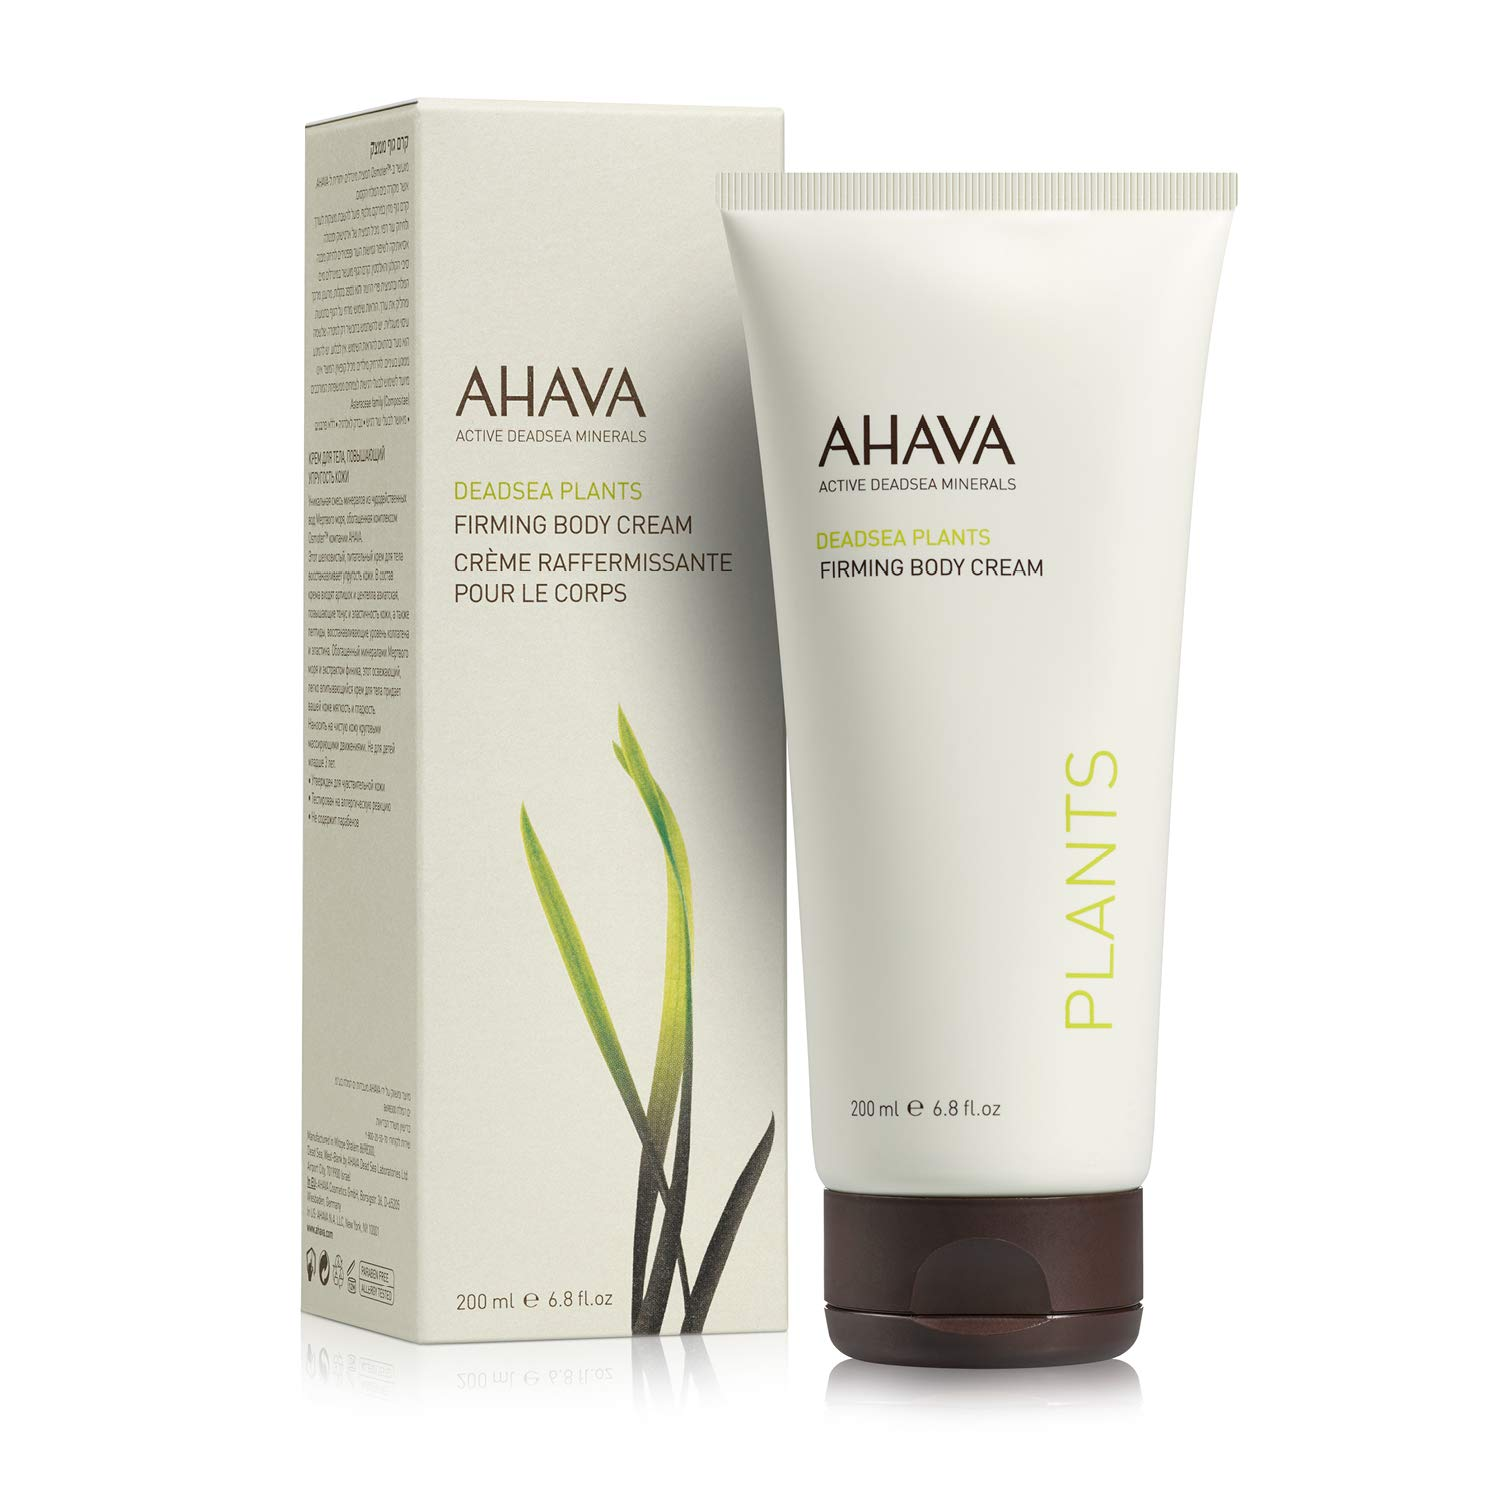 AHAVA Firming Body Cream 6.8 oz